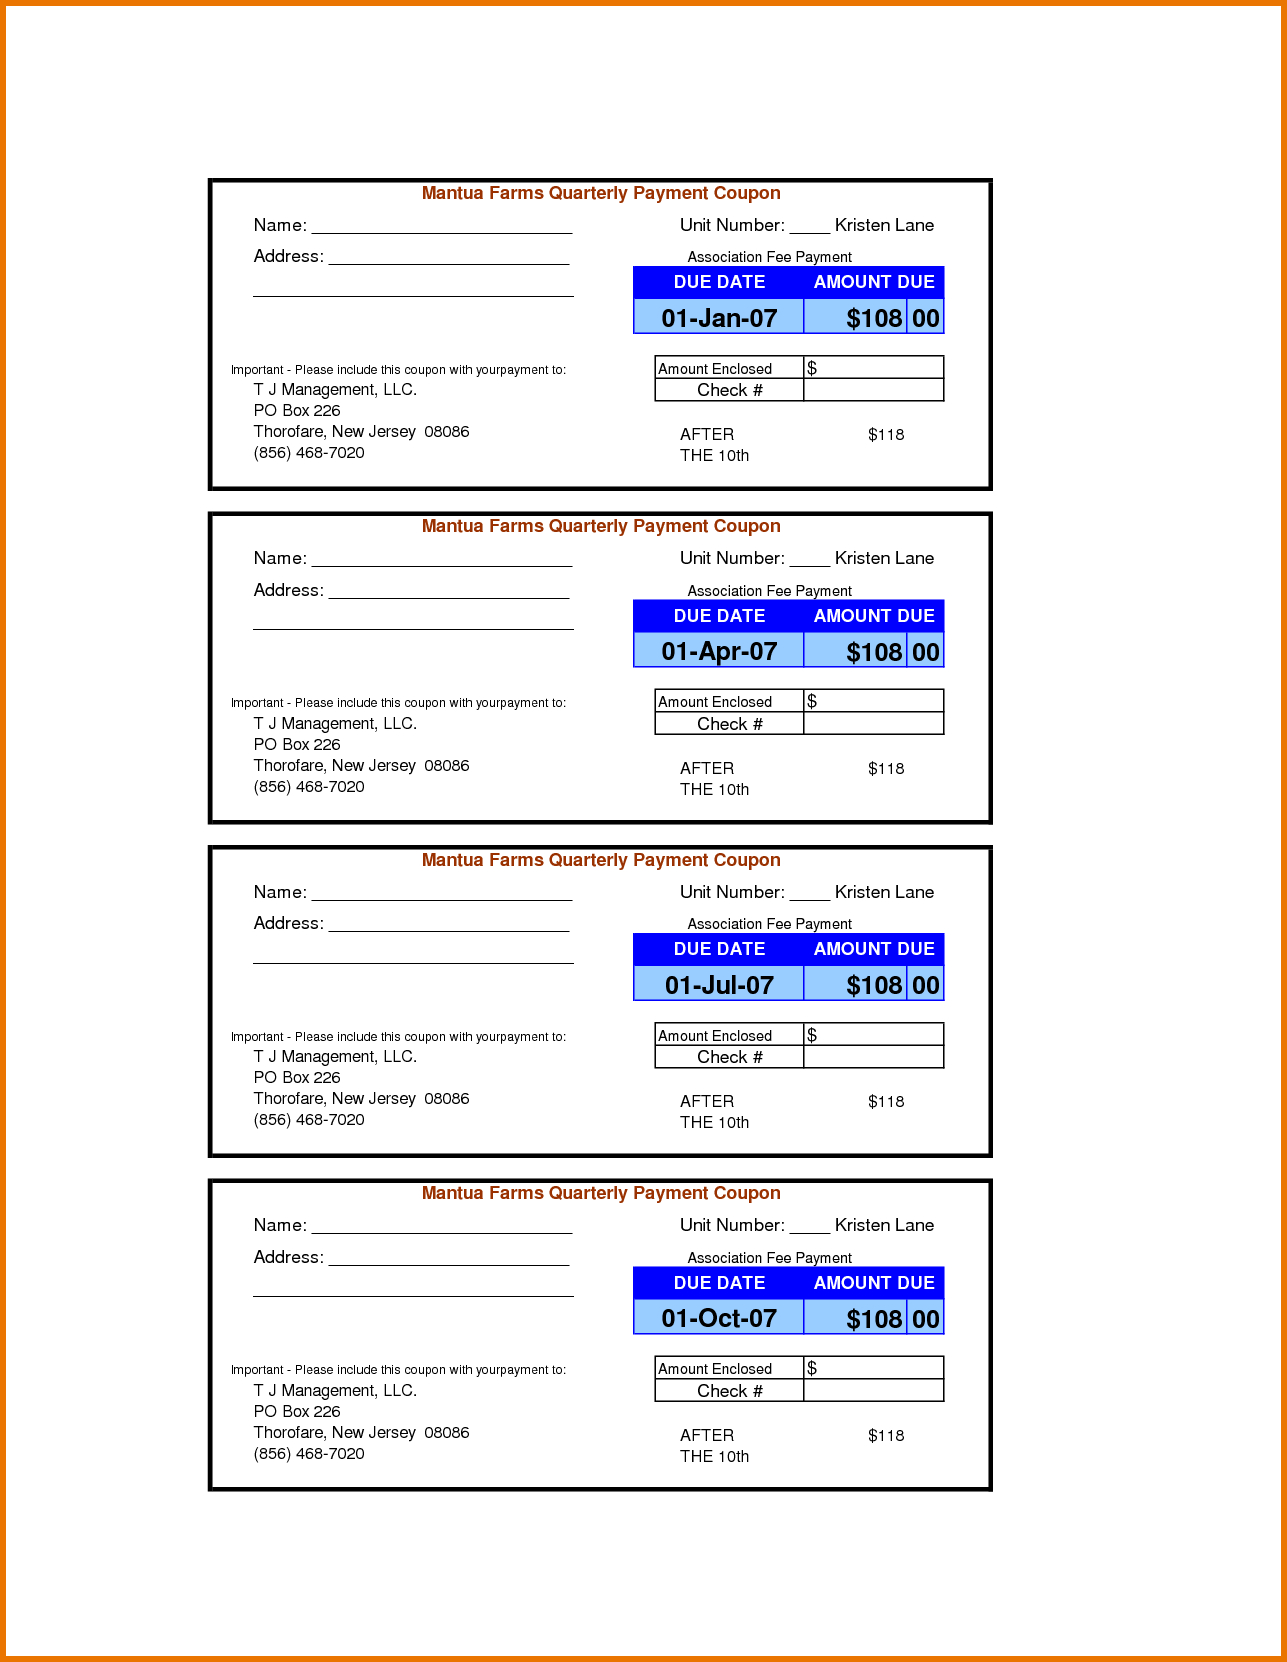 004 Payment Coupon Book Template Oceuwrhh Wonderful Ideas Excel Free - Free Printable Payment Coupon Book